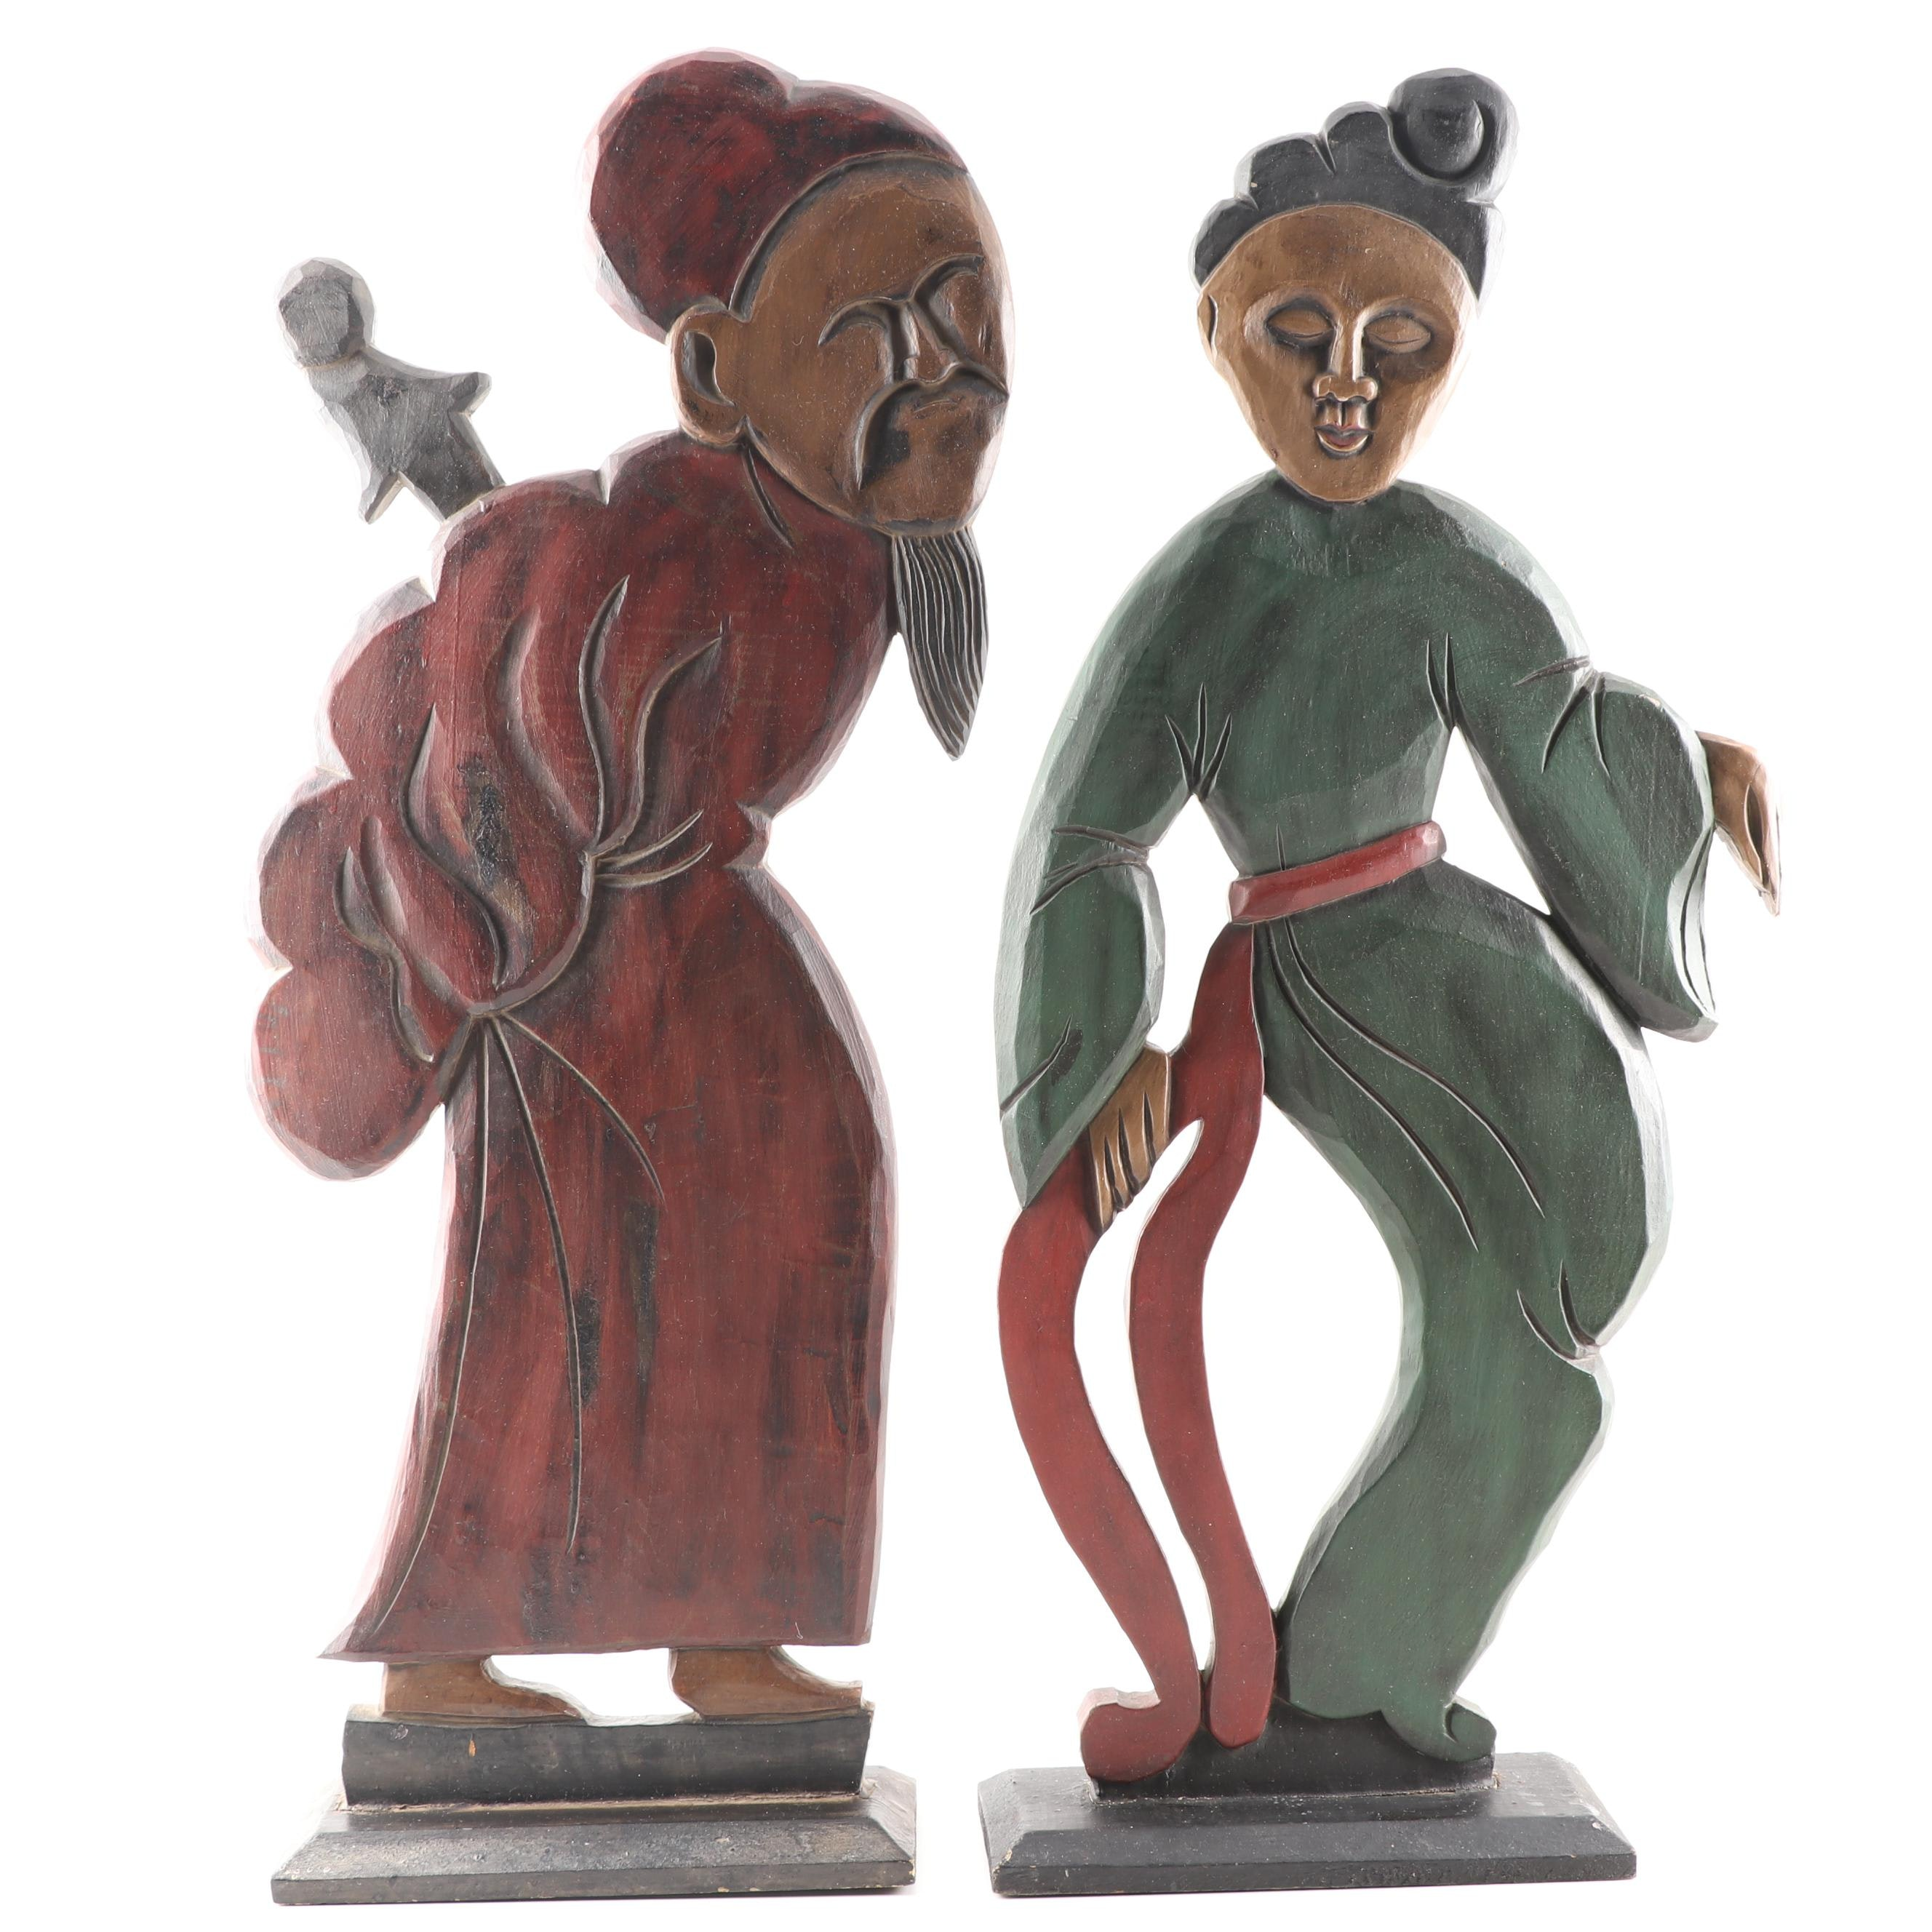 Chinese Inspired Wooden Standing Figurines